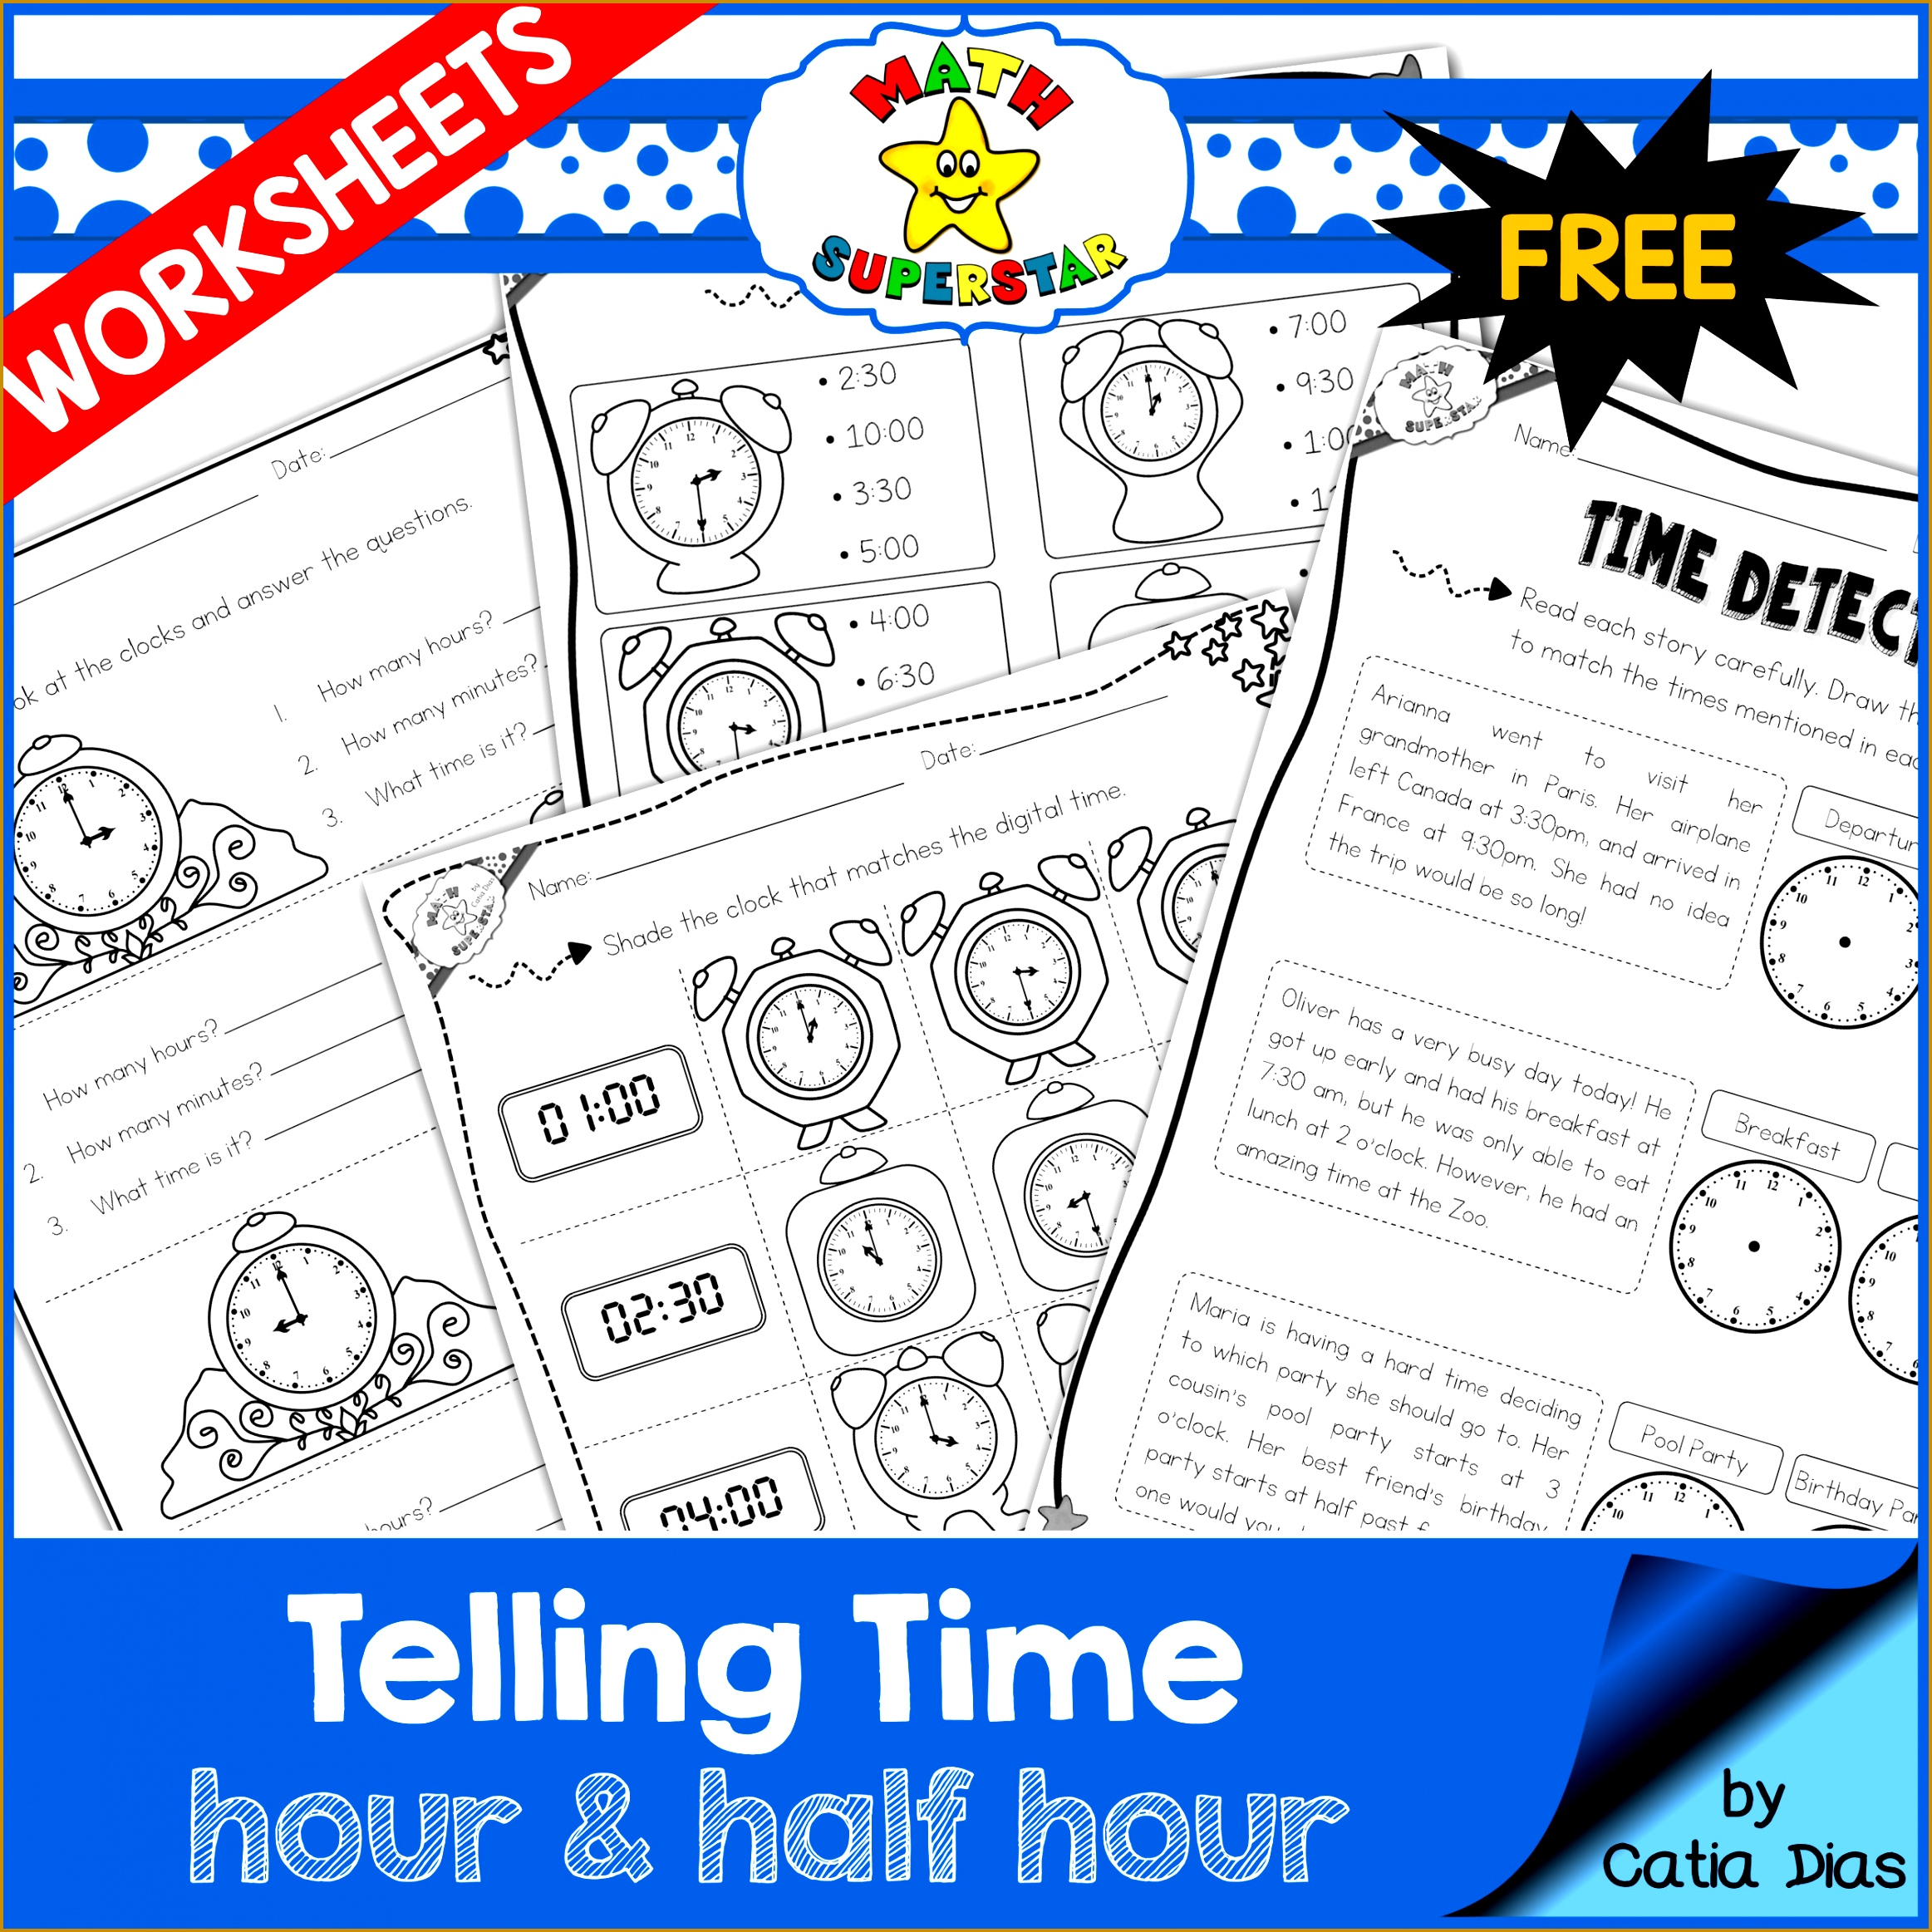 FREE Telling Time Worksheets hour and half hour 23252325